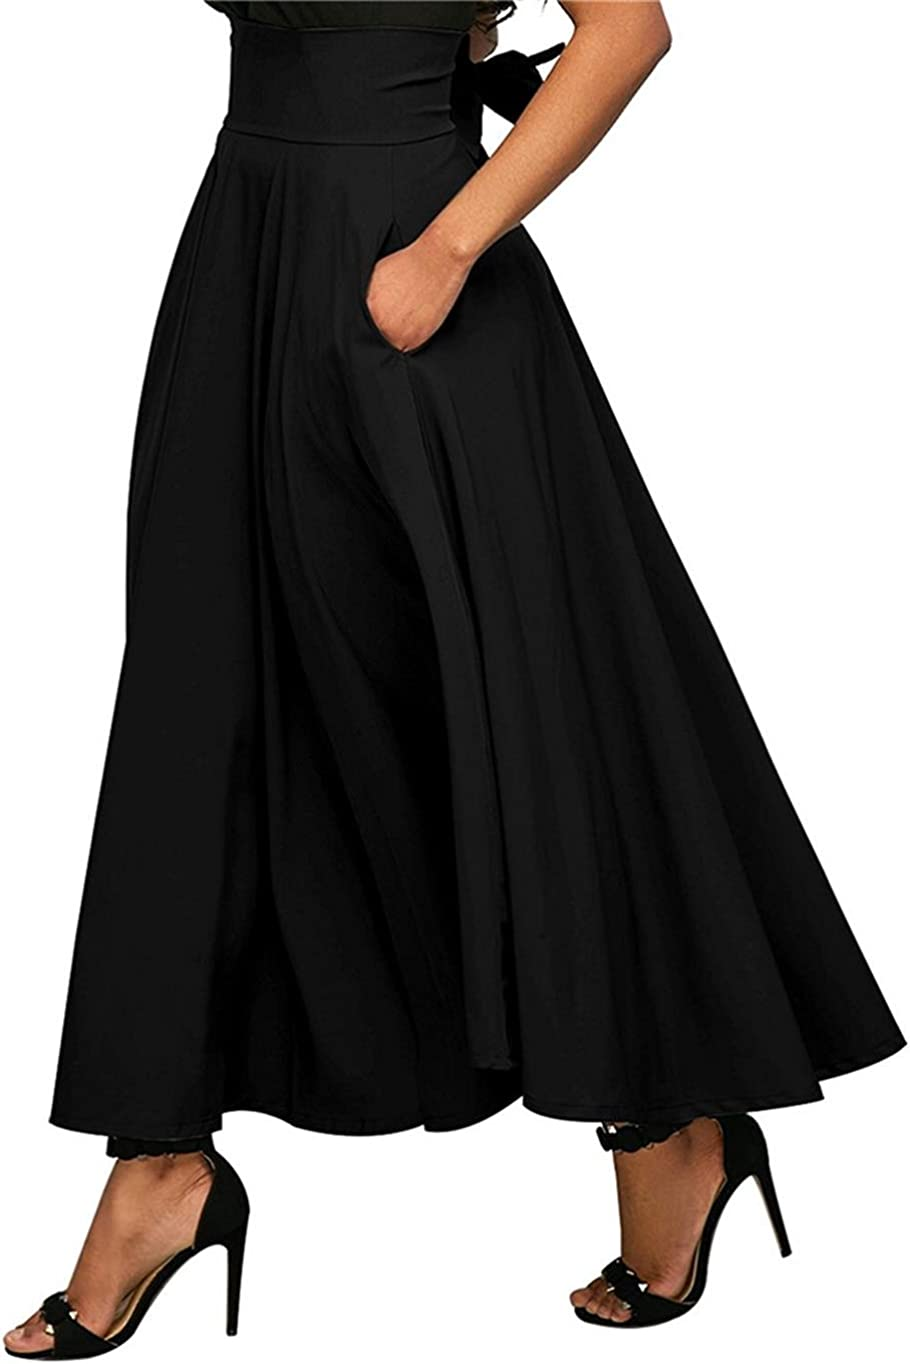 ChicChic Women's High Waist A-line Bowknot Flare Long Work Slit Skirt with Pocket